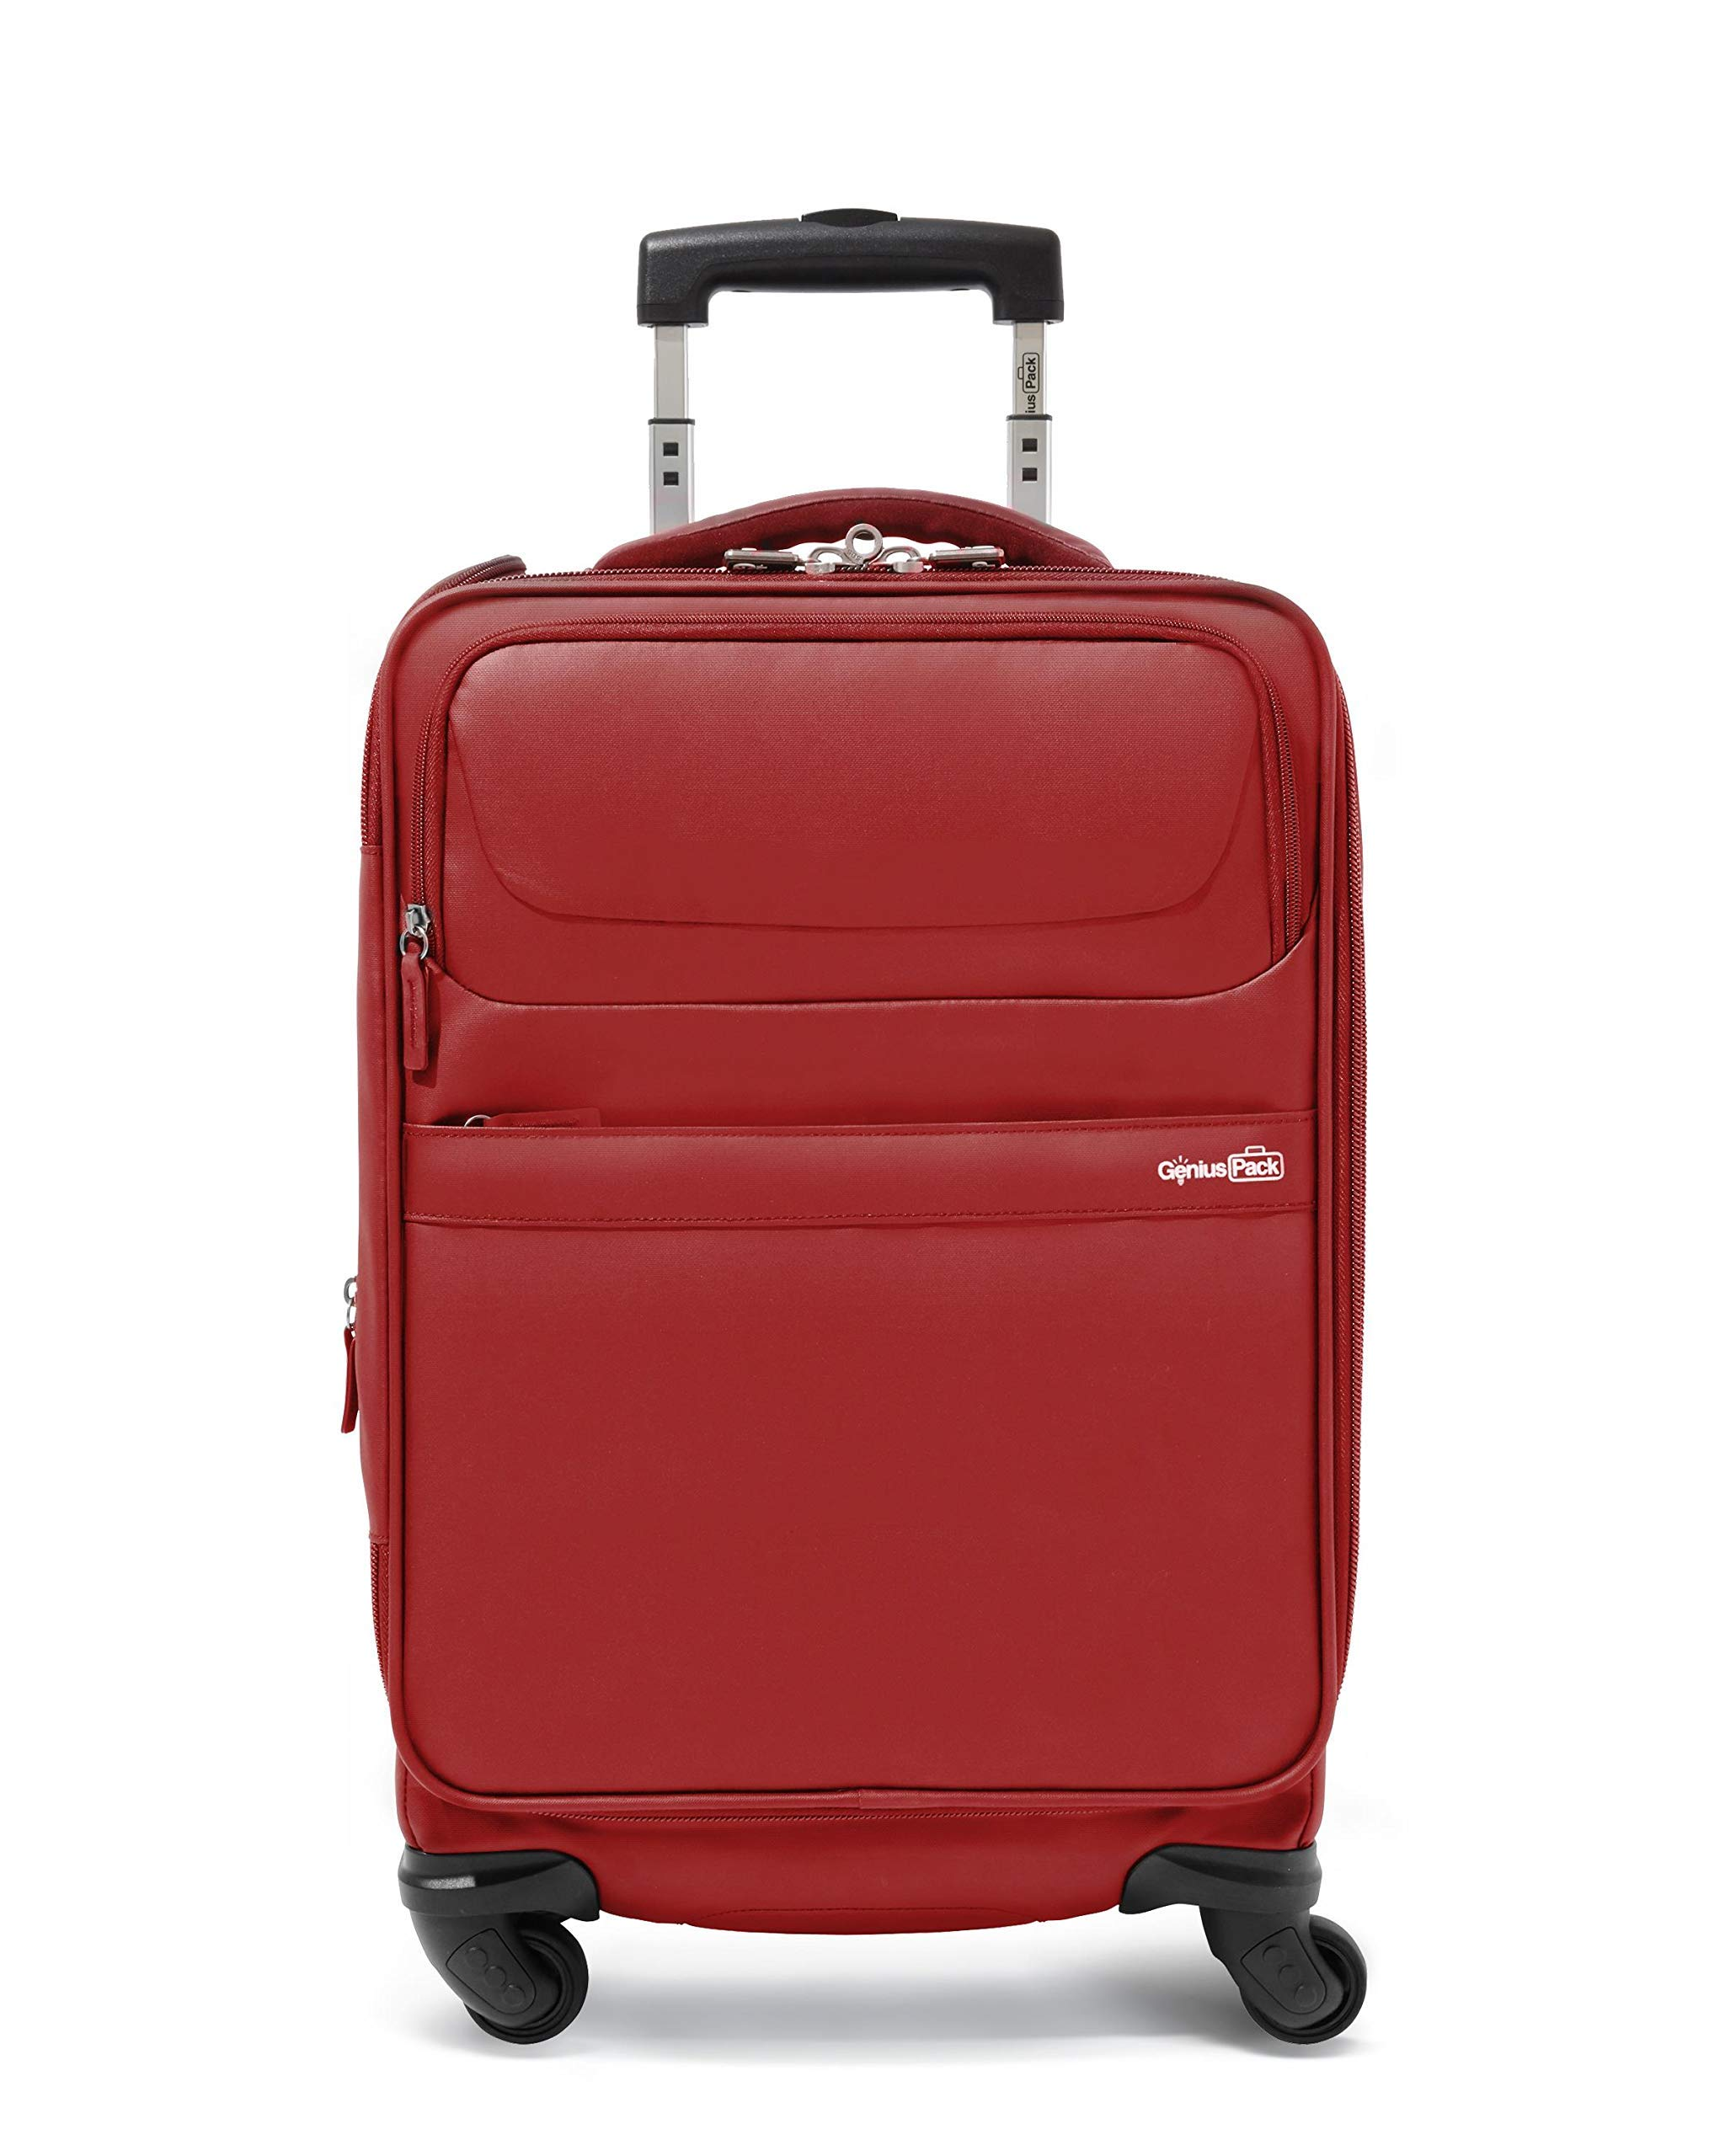 Genius Pack G4 22'' Carry On Spinner Luggage - Smart, Organized, Lightweight Suitcase (G4 - Red)